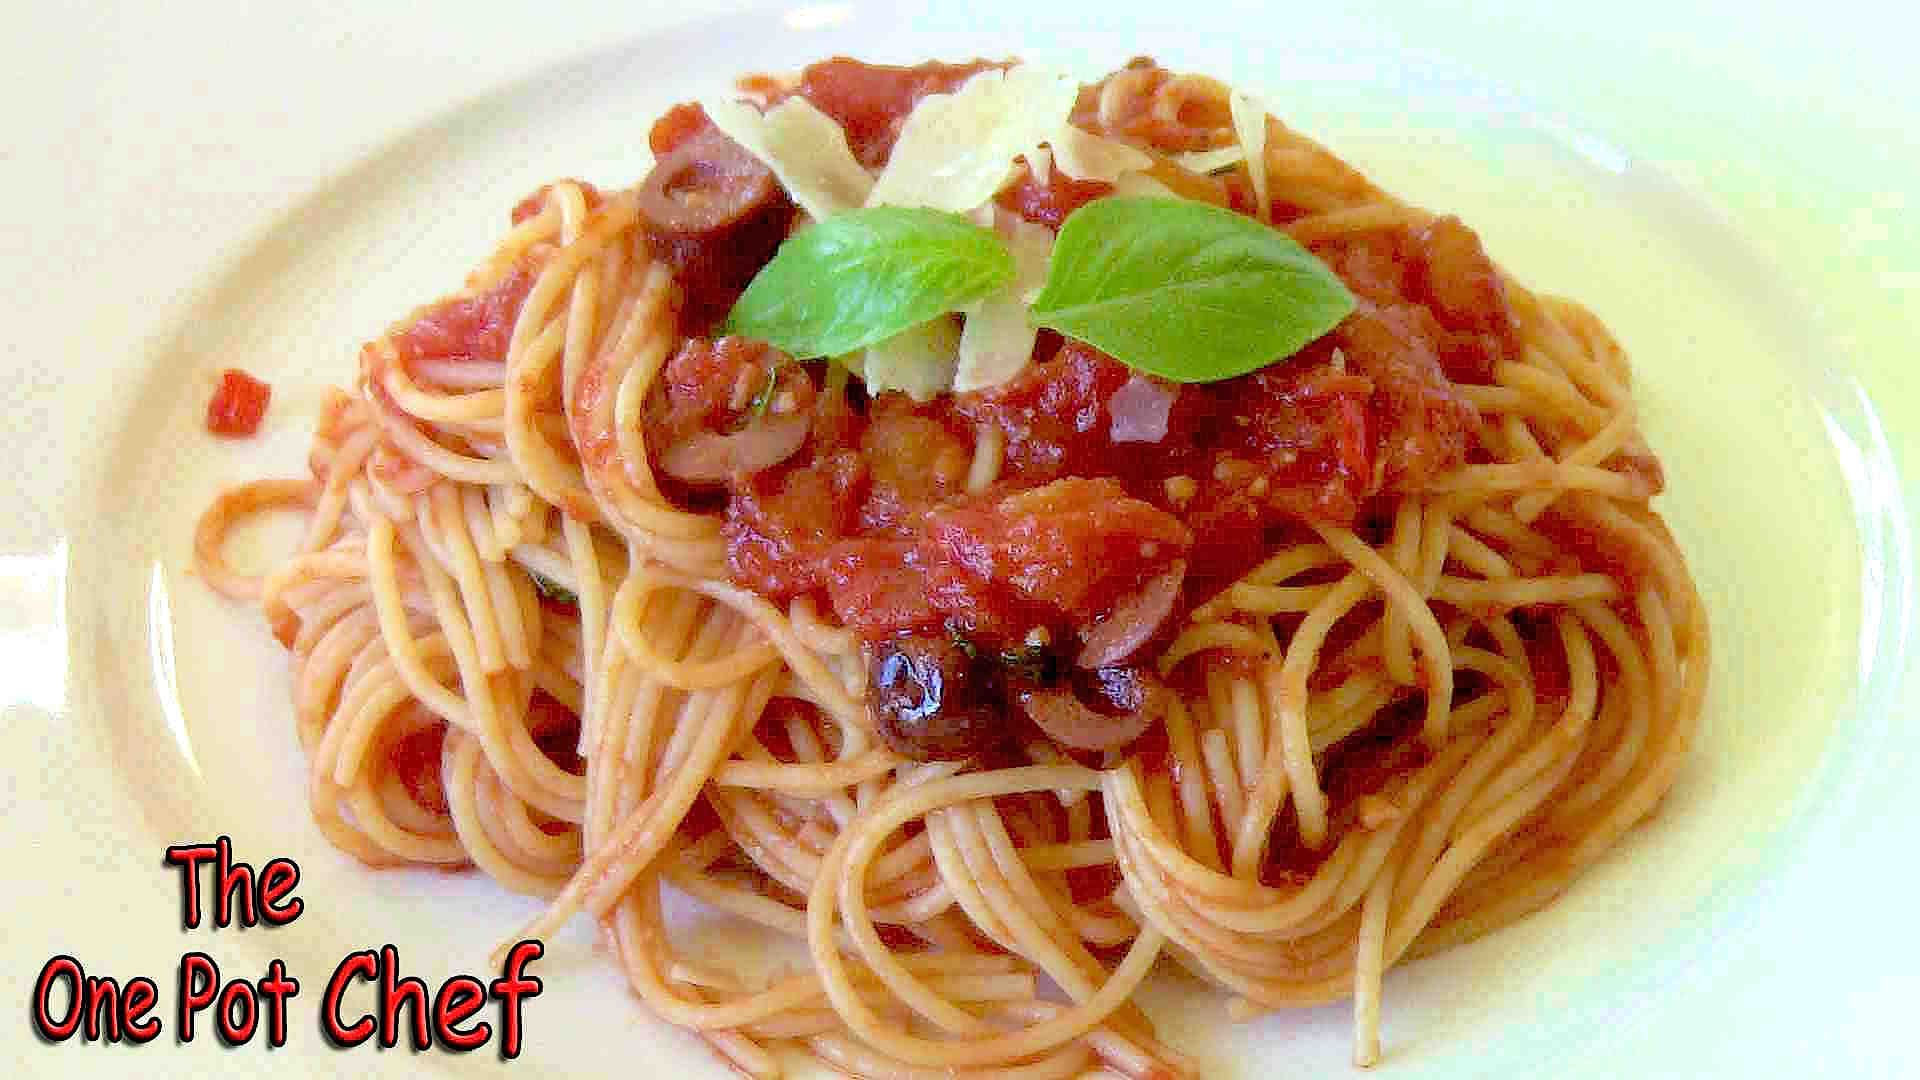 Spaghetti Puttanesca Recipe Video by OnePotChefShow | iFood.tv